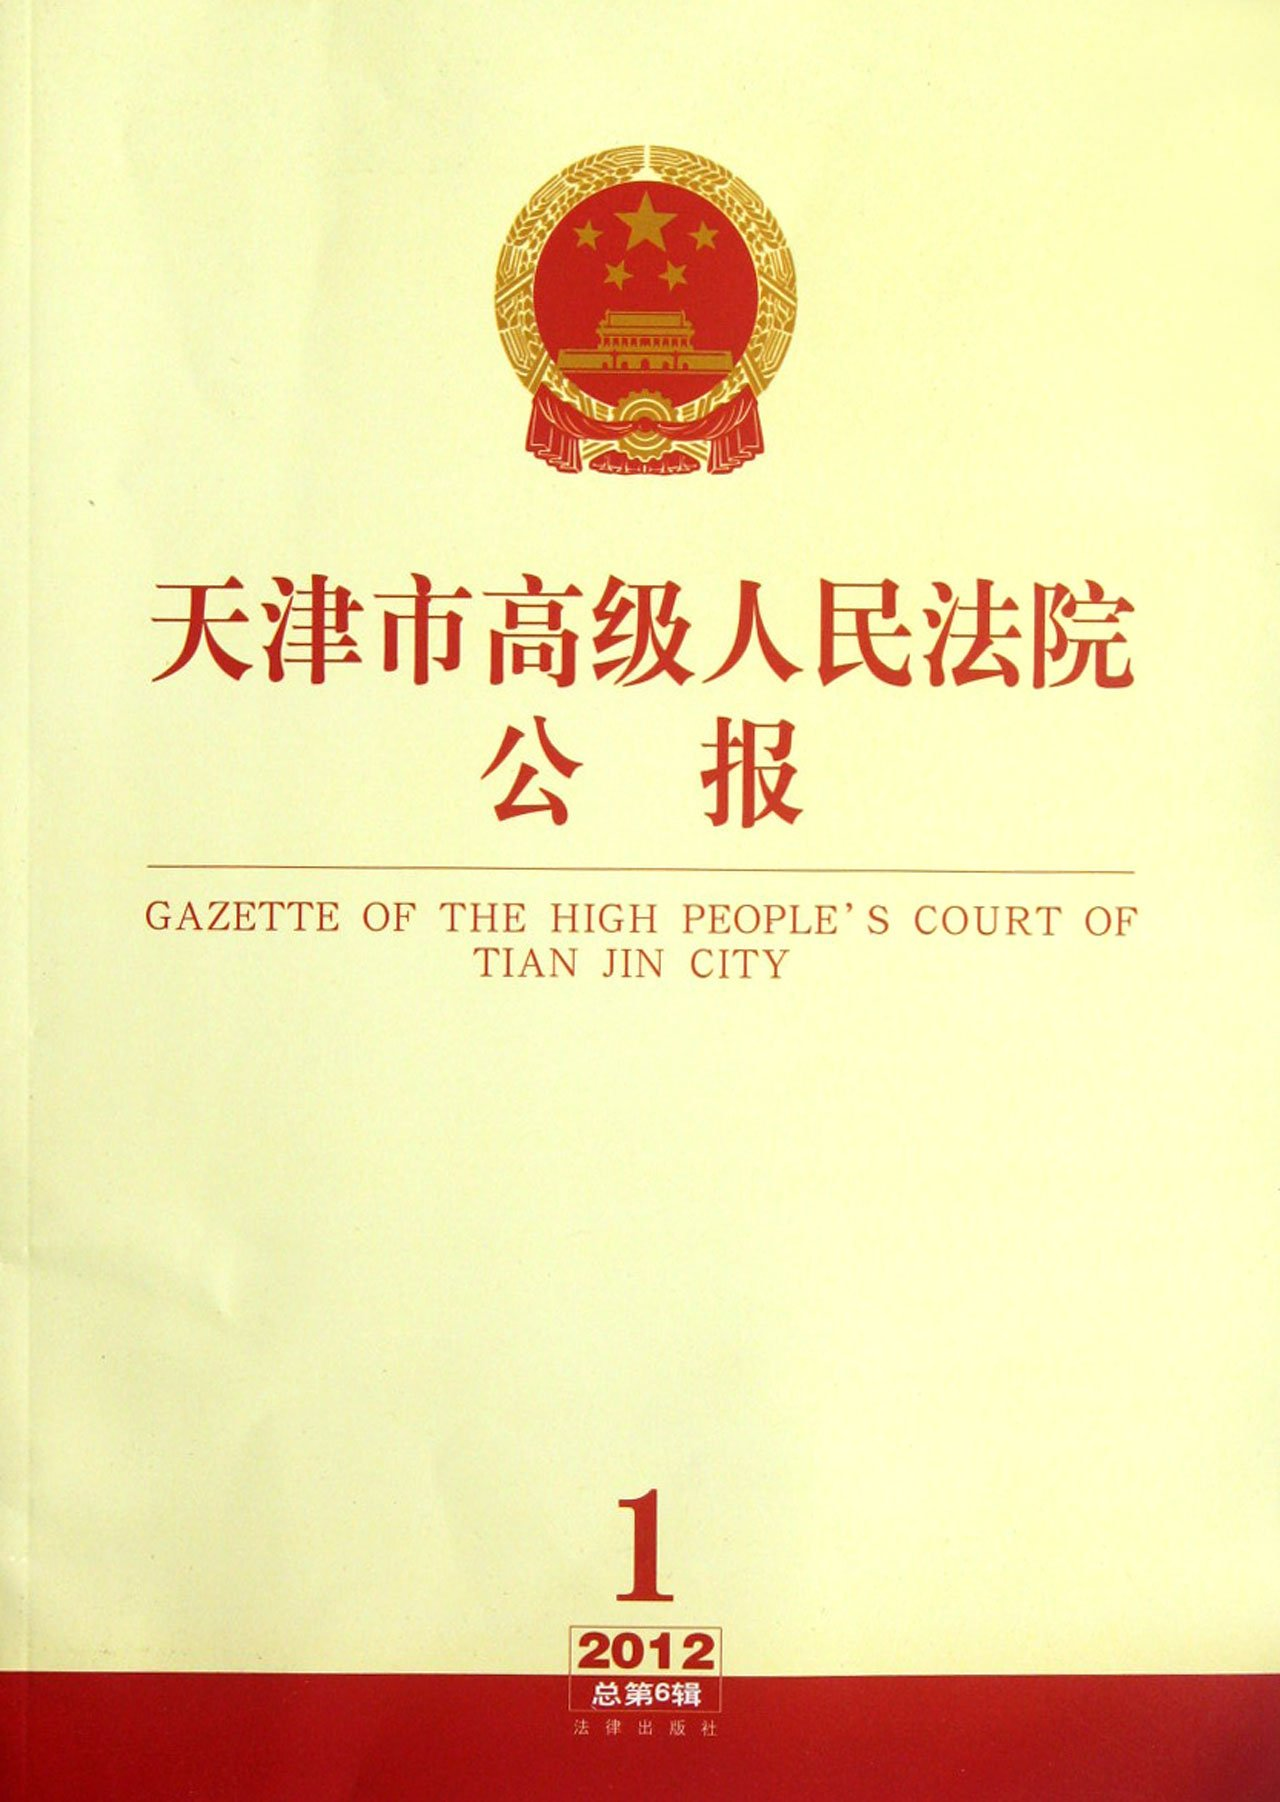 Gazette of the Higher Peoples Court of Tianjin City(VOL. 6) (Chinese Edition) pdf